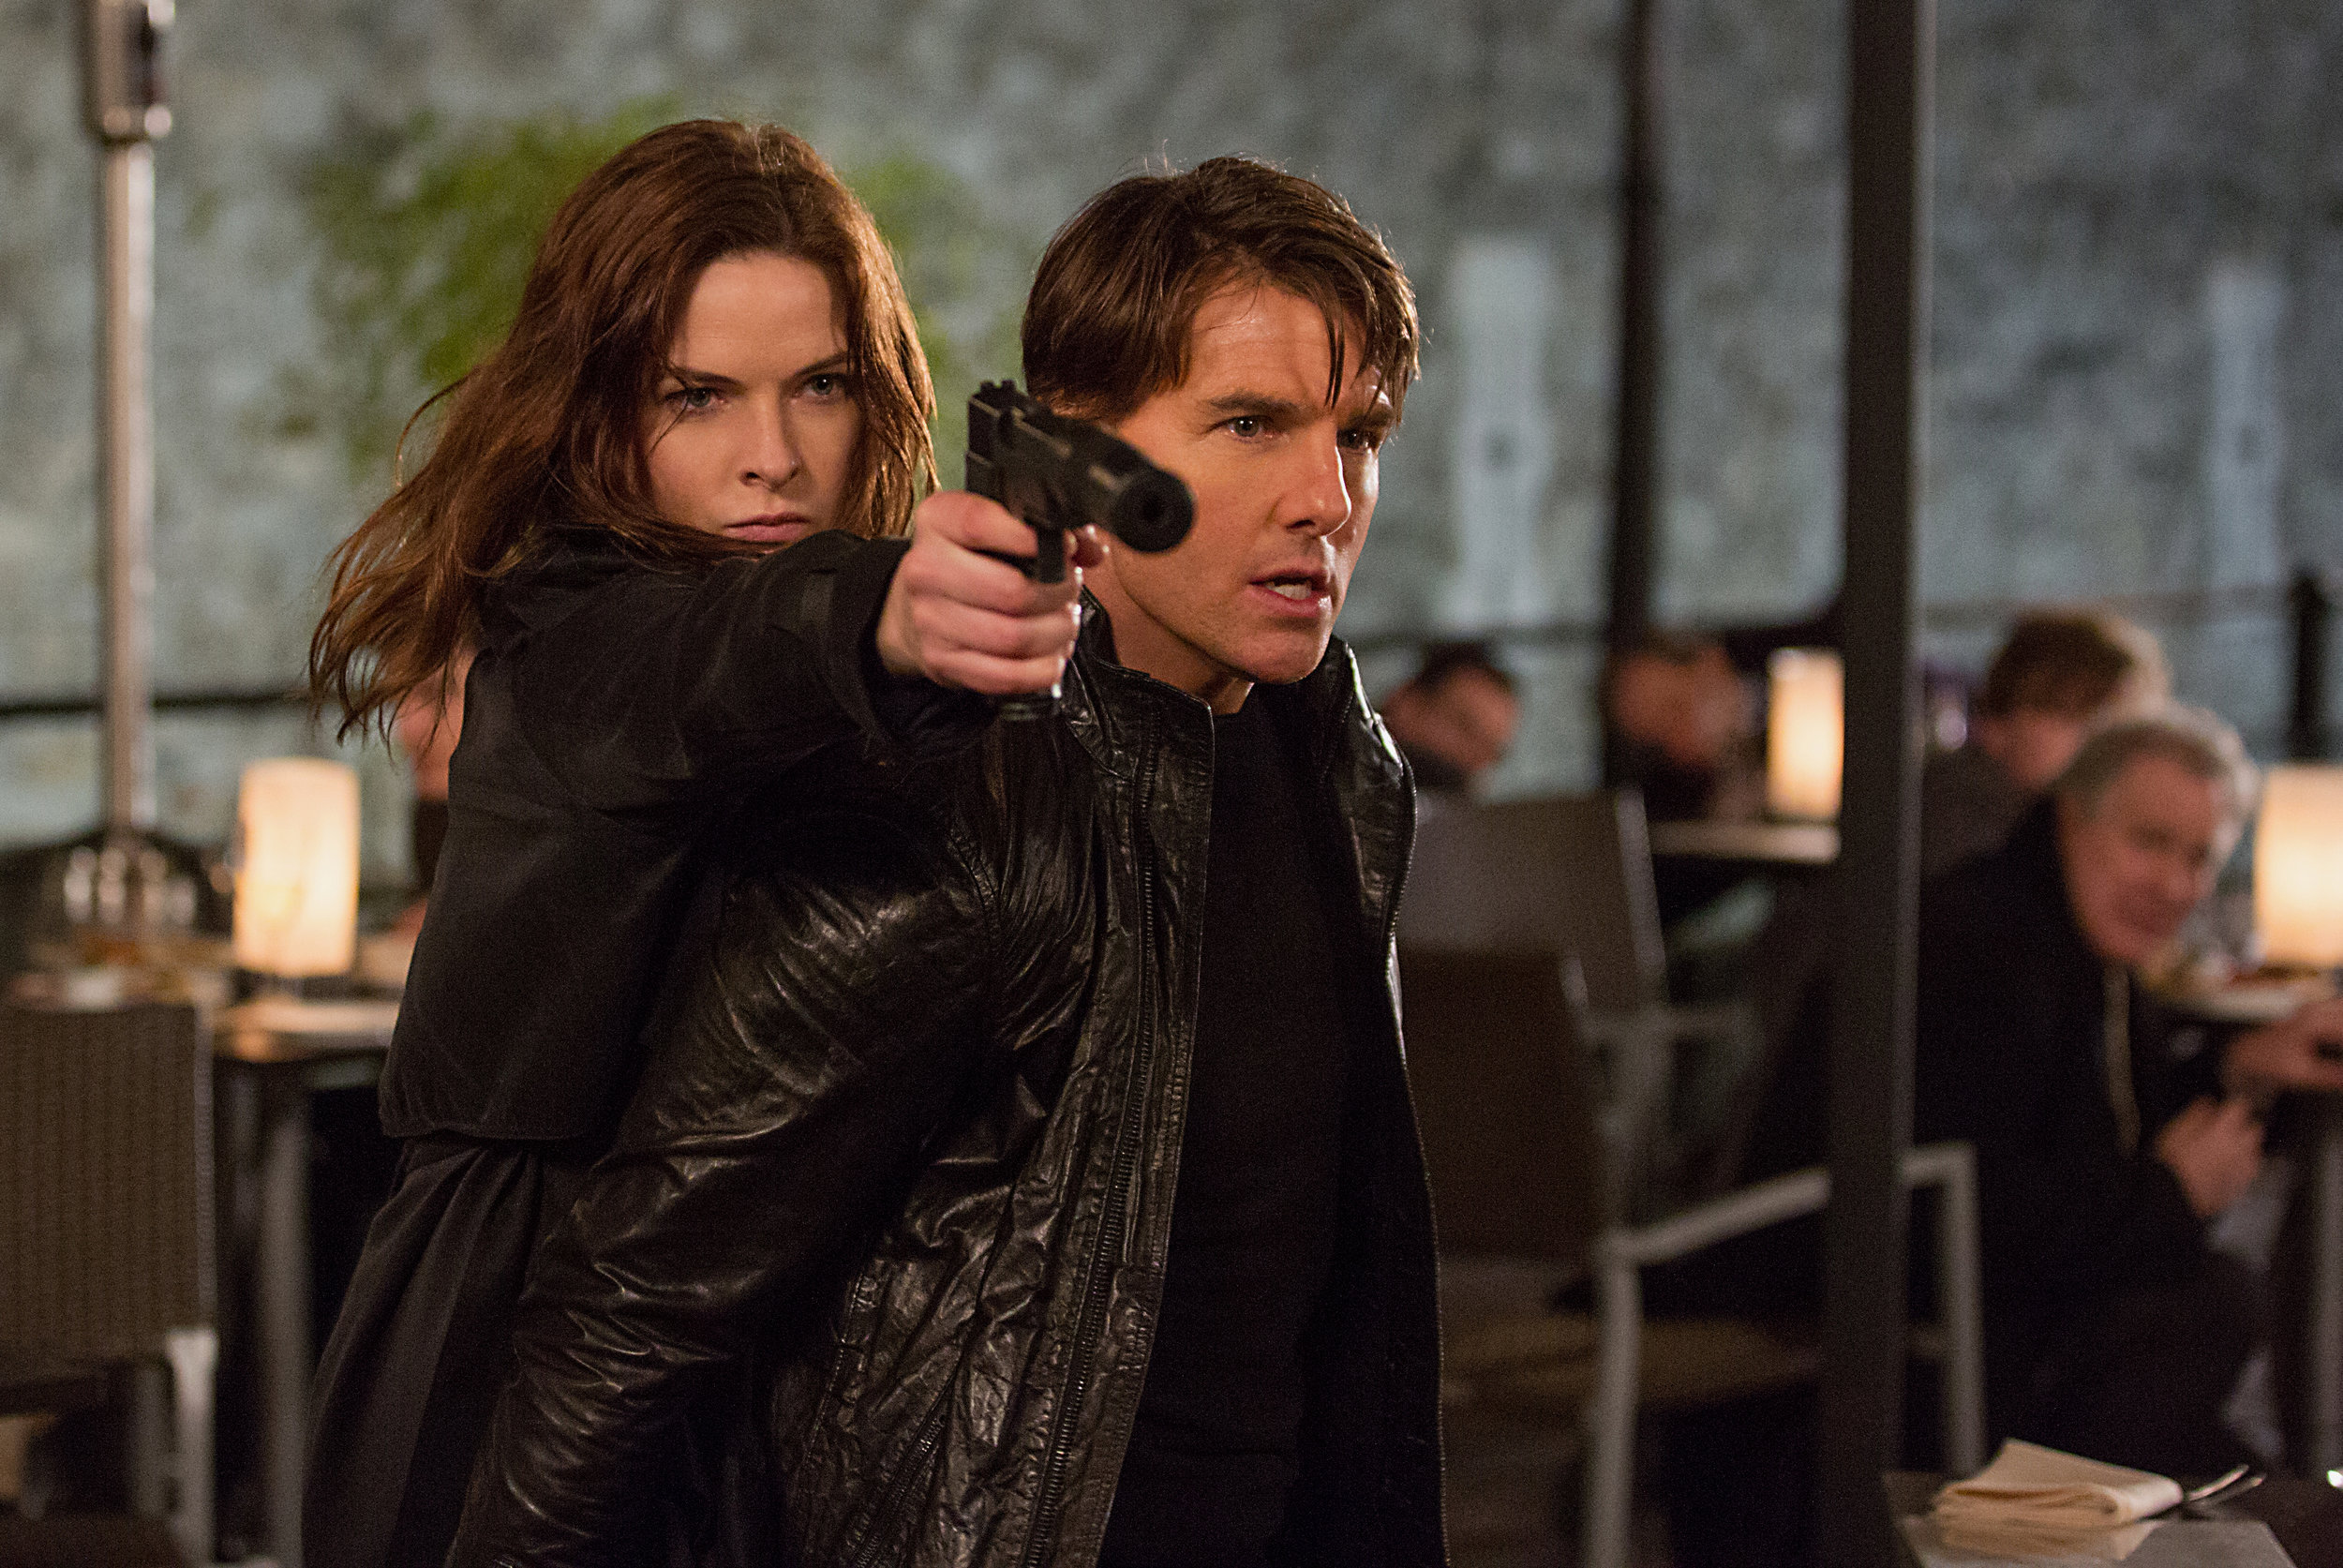 Rebecca Ferguson and Tom Cruise star in 'Mission Impossible: Rogue Nation', directed by Christopher McQuarrie.